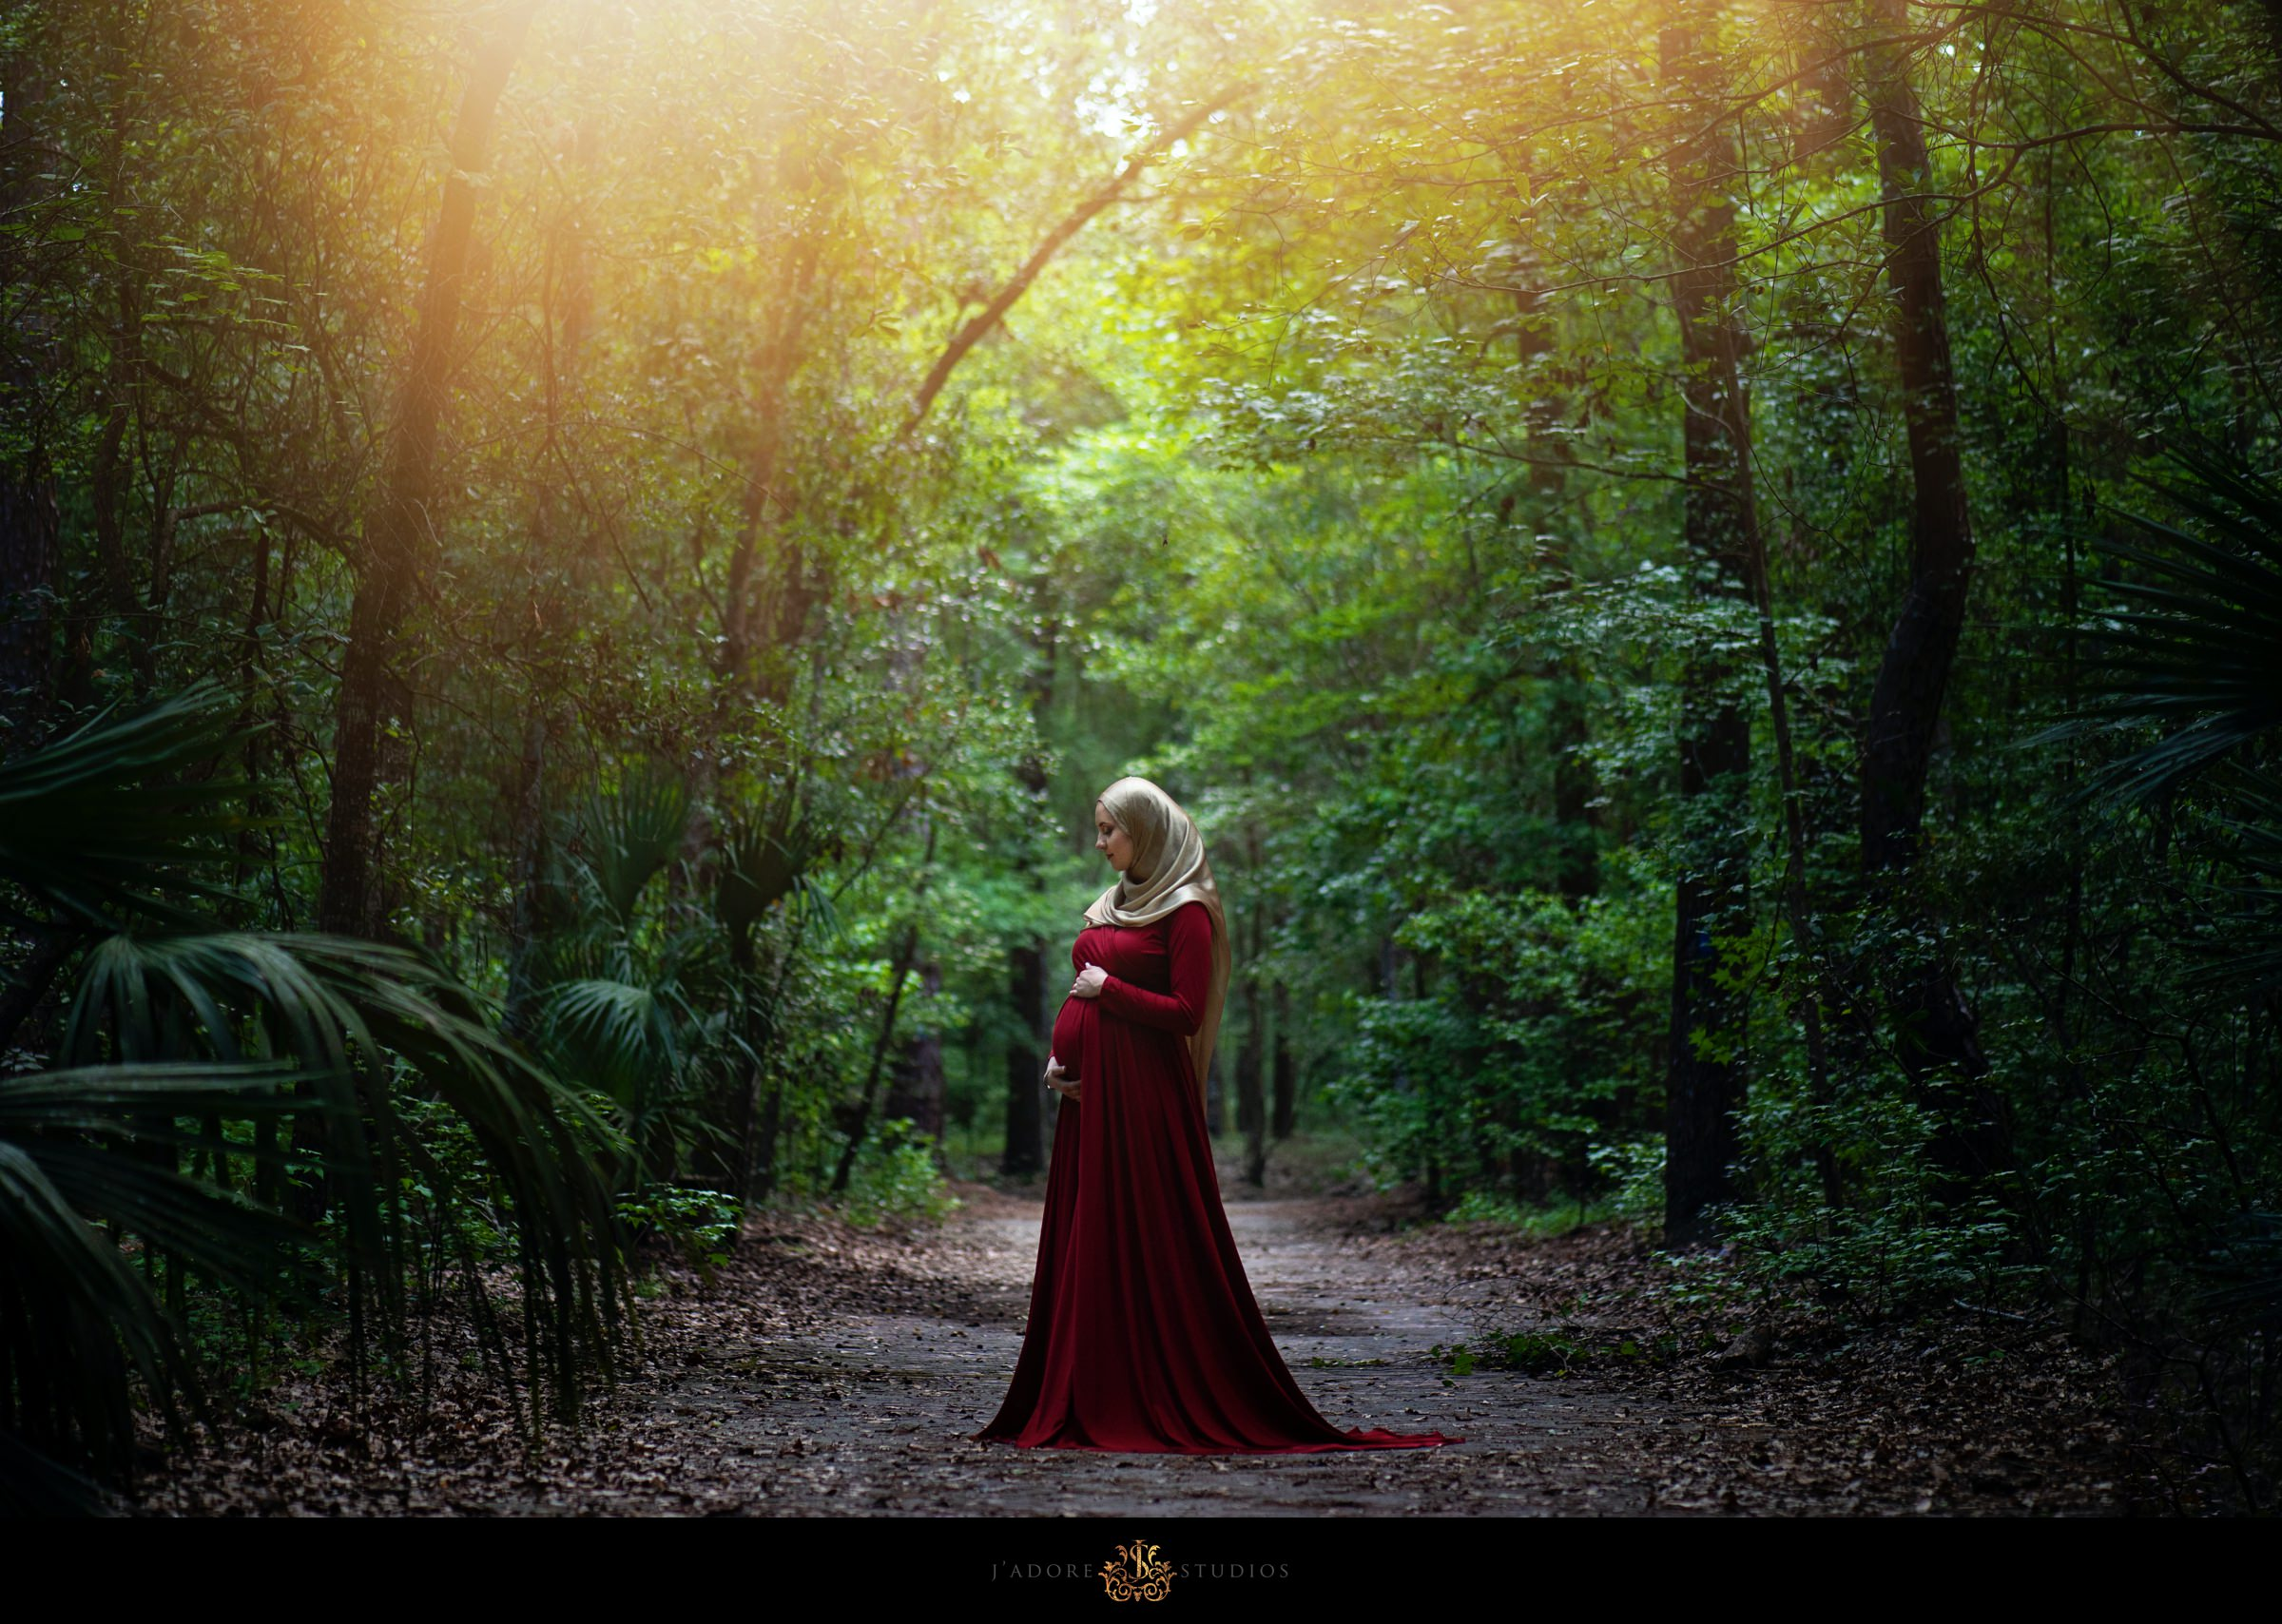 Pregnant woman in red dress in a forest in Jacksonville Florida